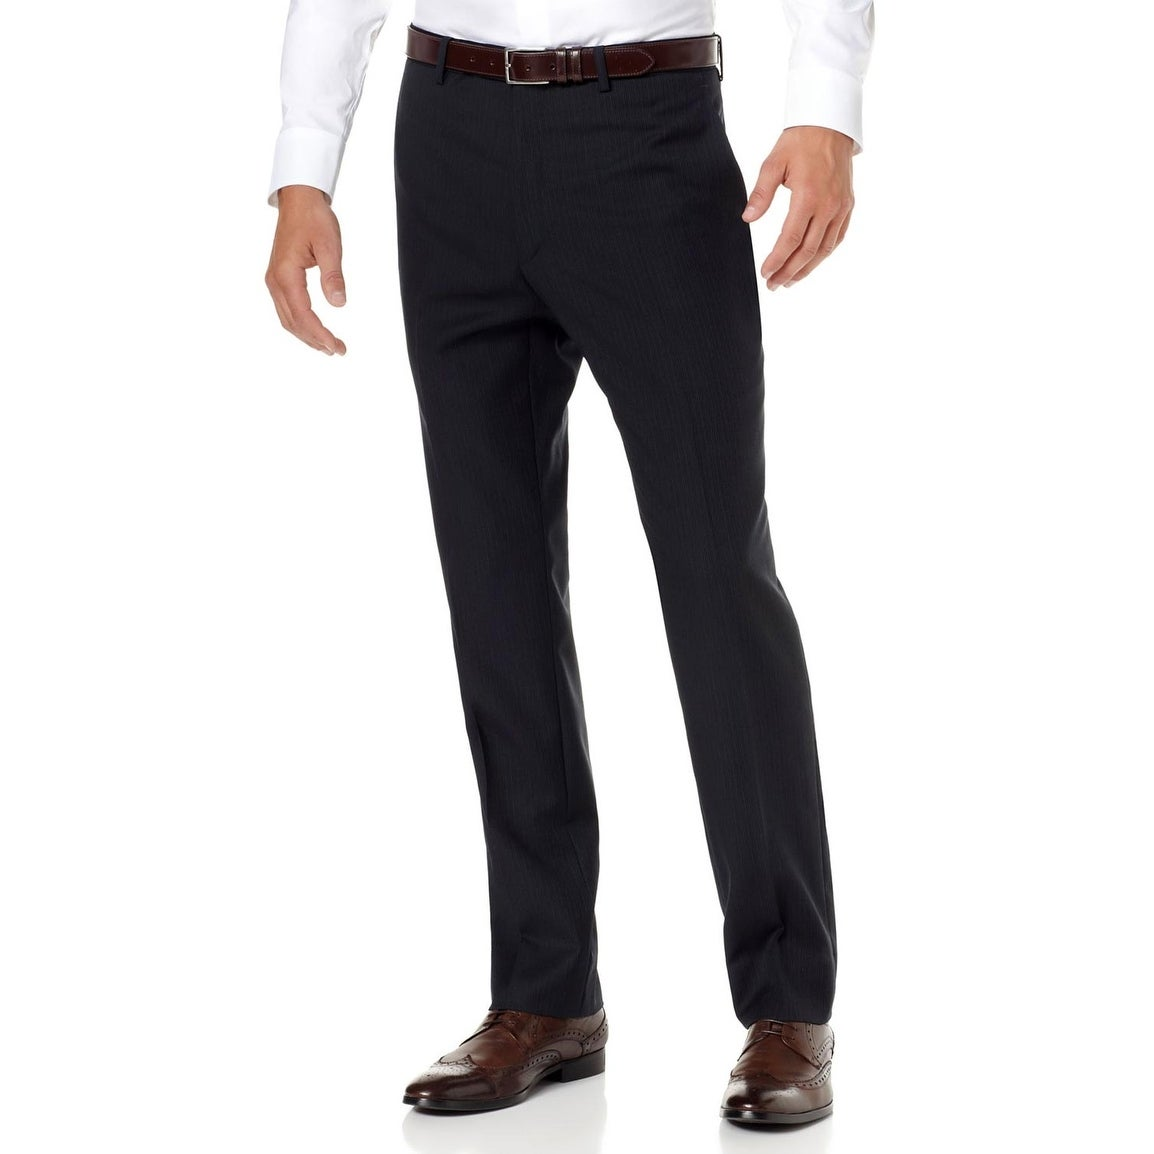 Alfani Classic Fit Black Striped 100/% Wool Flat Front Hemmed Dress Pants